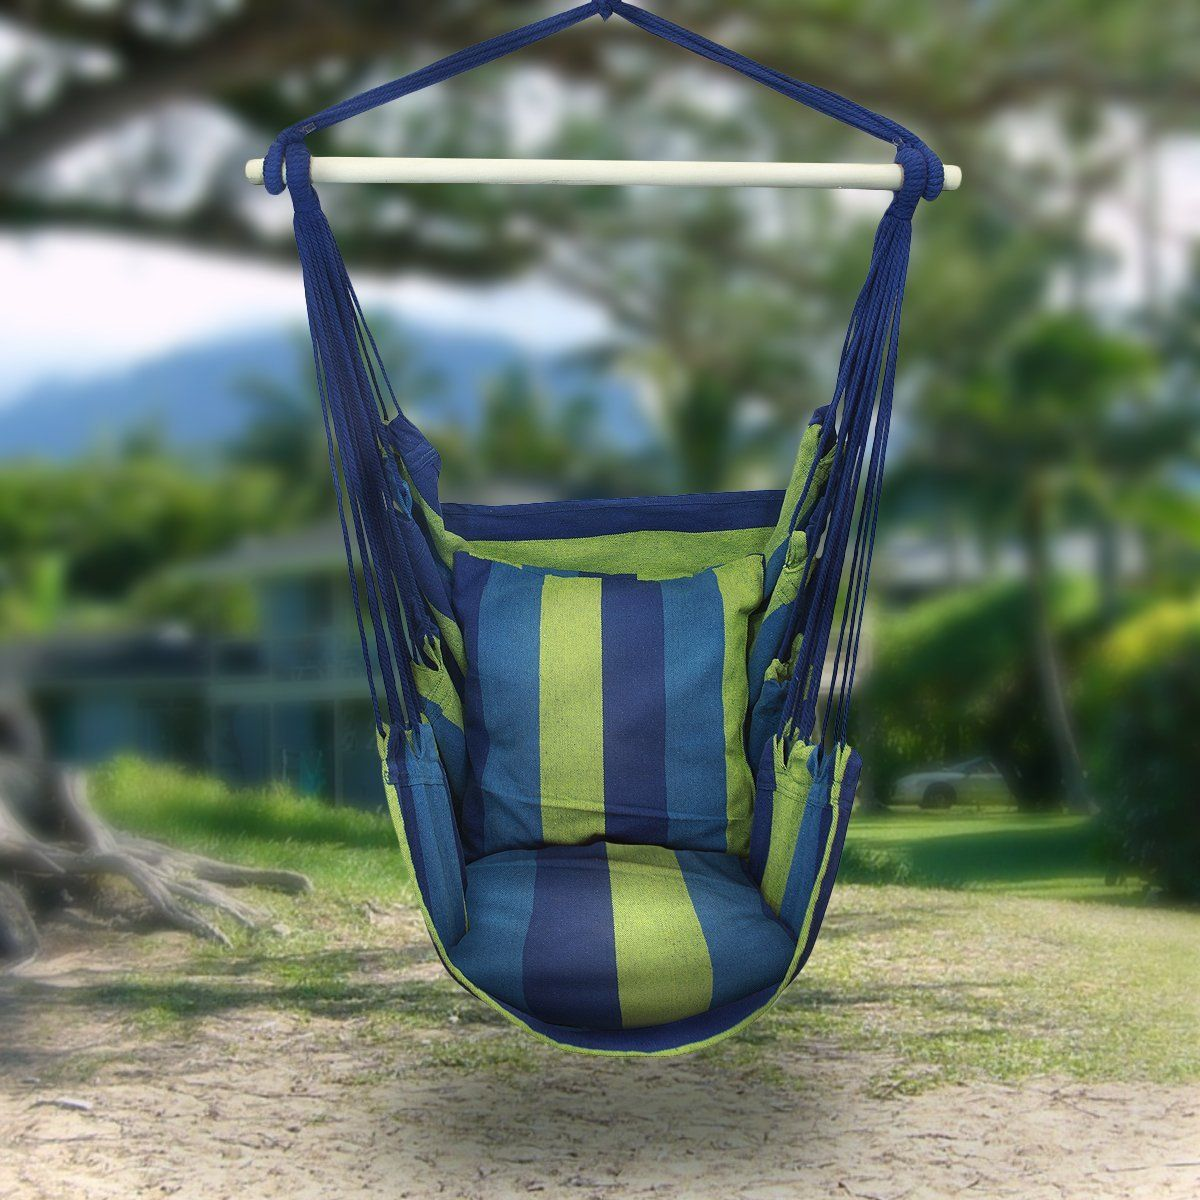 Sorbus Hanging Rope Hammock Chair Swing Seat For Any Indoor Or Outdoor  Spaces  Max.